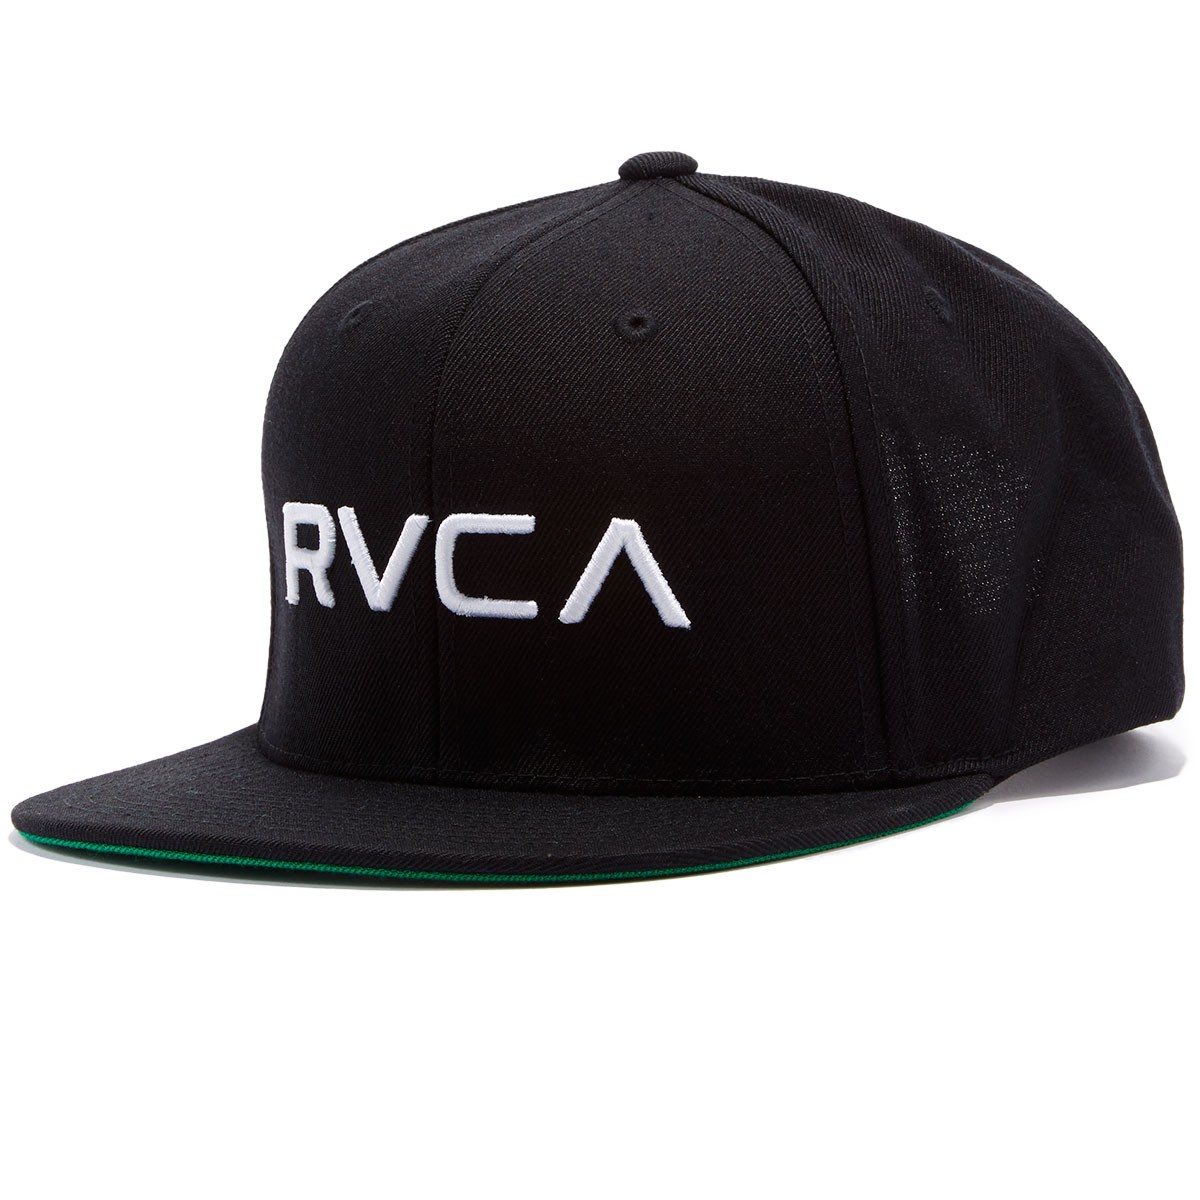 RVCA Twill Snapback Hat - Black/White